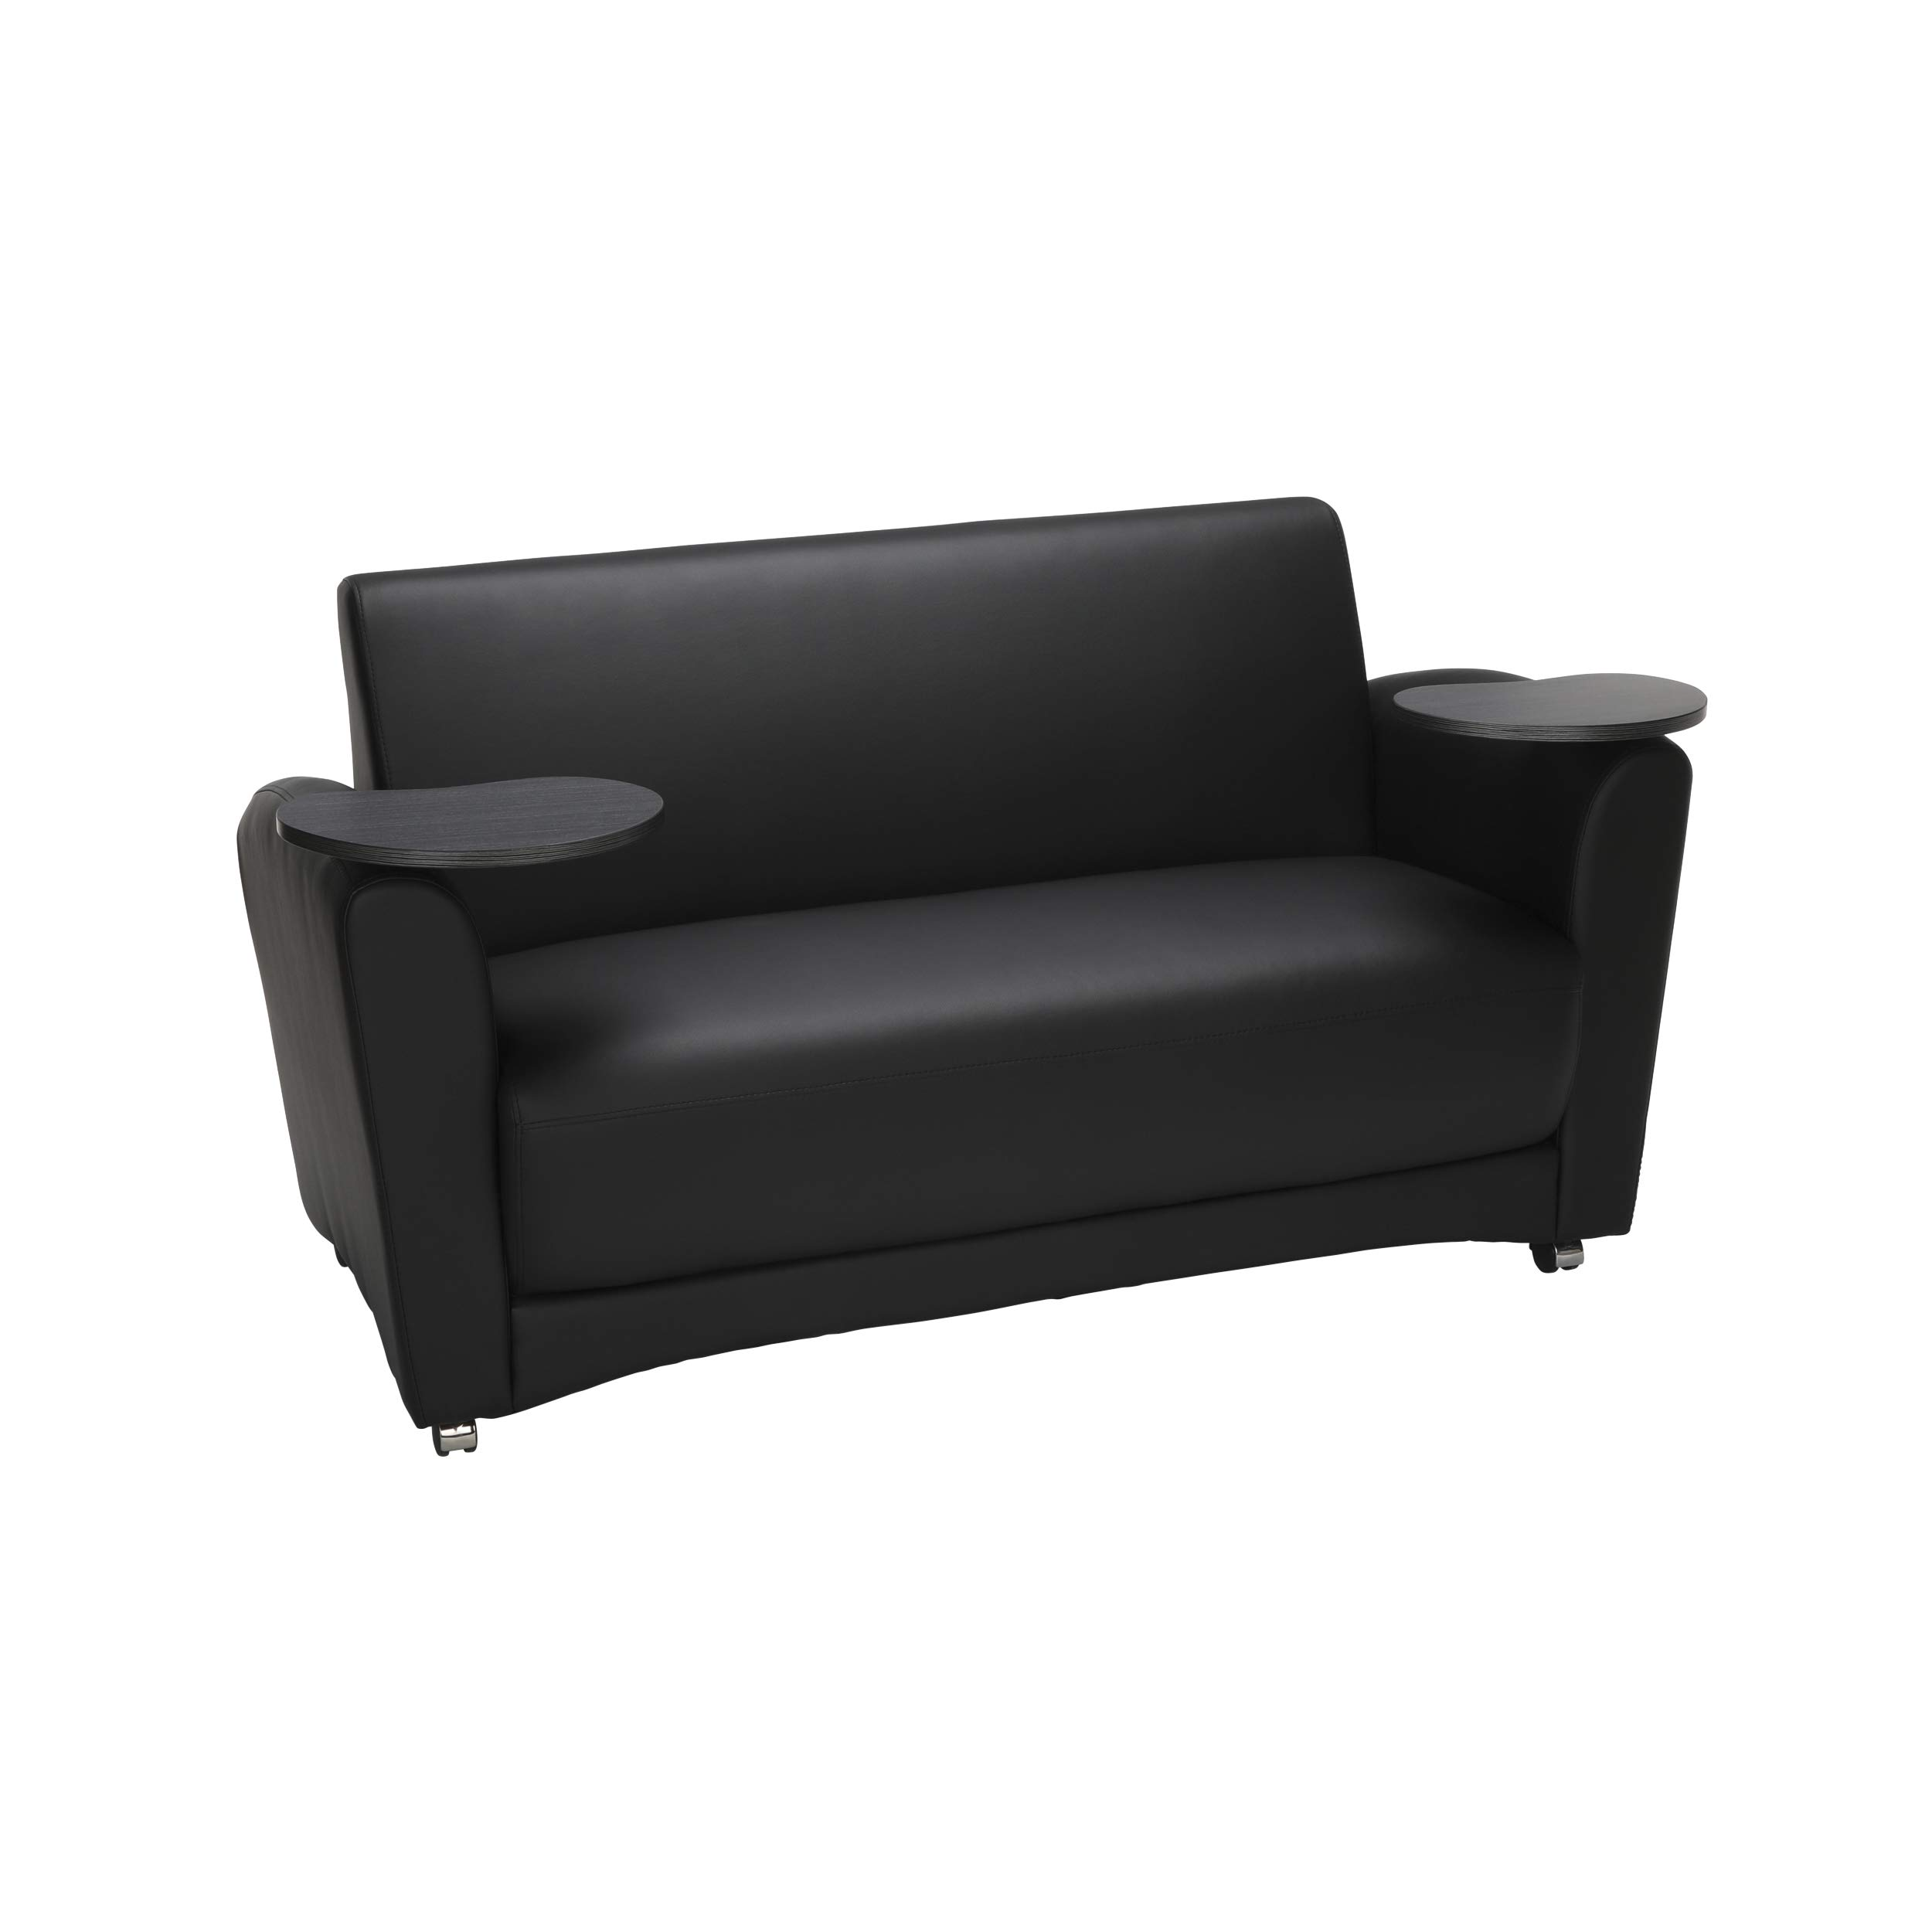 OFM InterPlay Series Social Seating Sofa with Double Tungsten Tablets, in Black (822-PU606-TNGST)